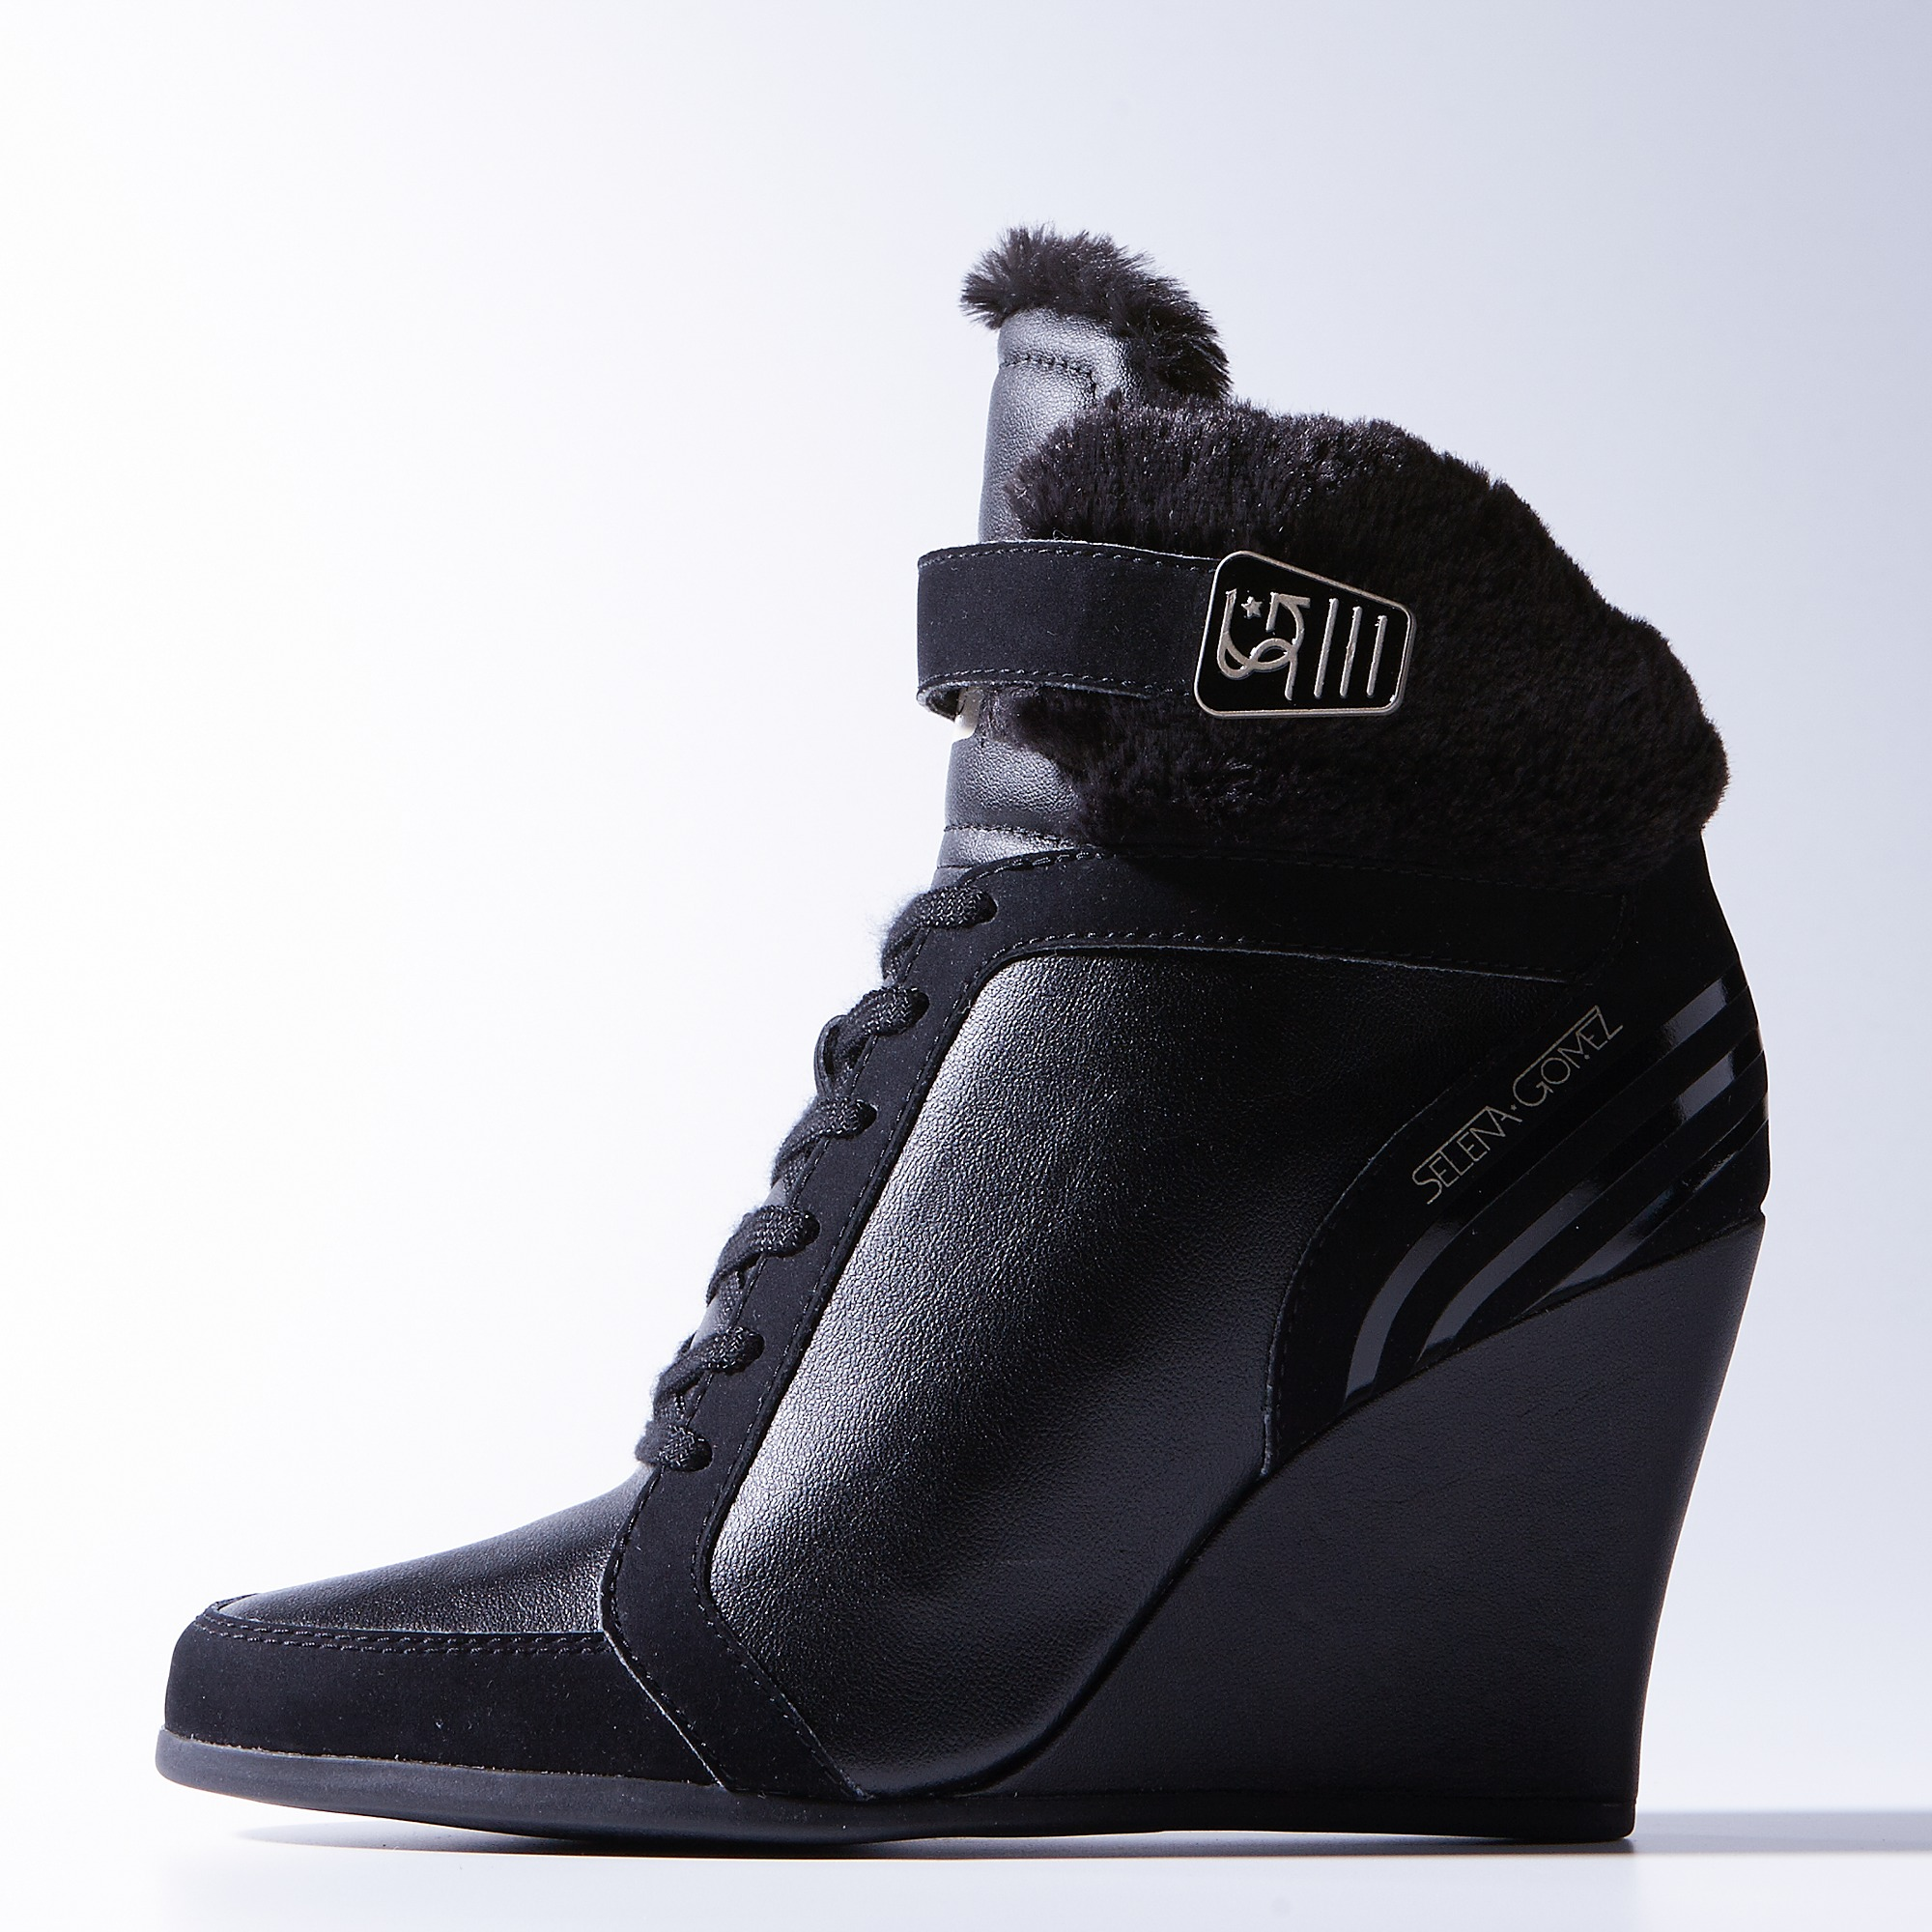 1684eb632d6 ... switzerland adidas selena gomez winter wedge shoes adidas us 4822c 50bcc